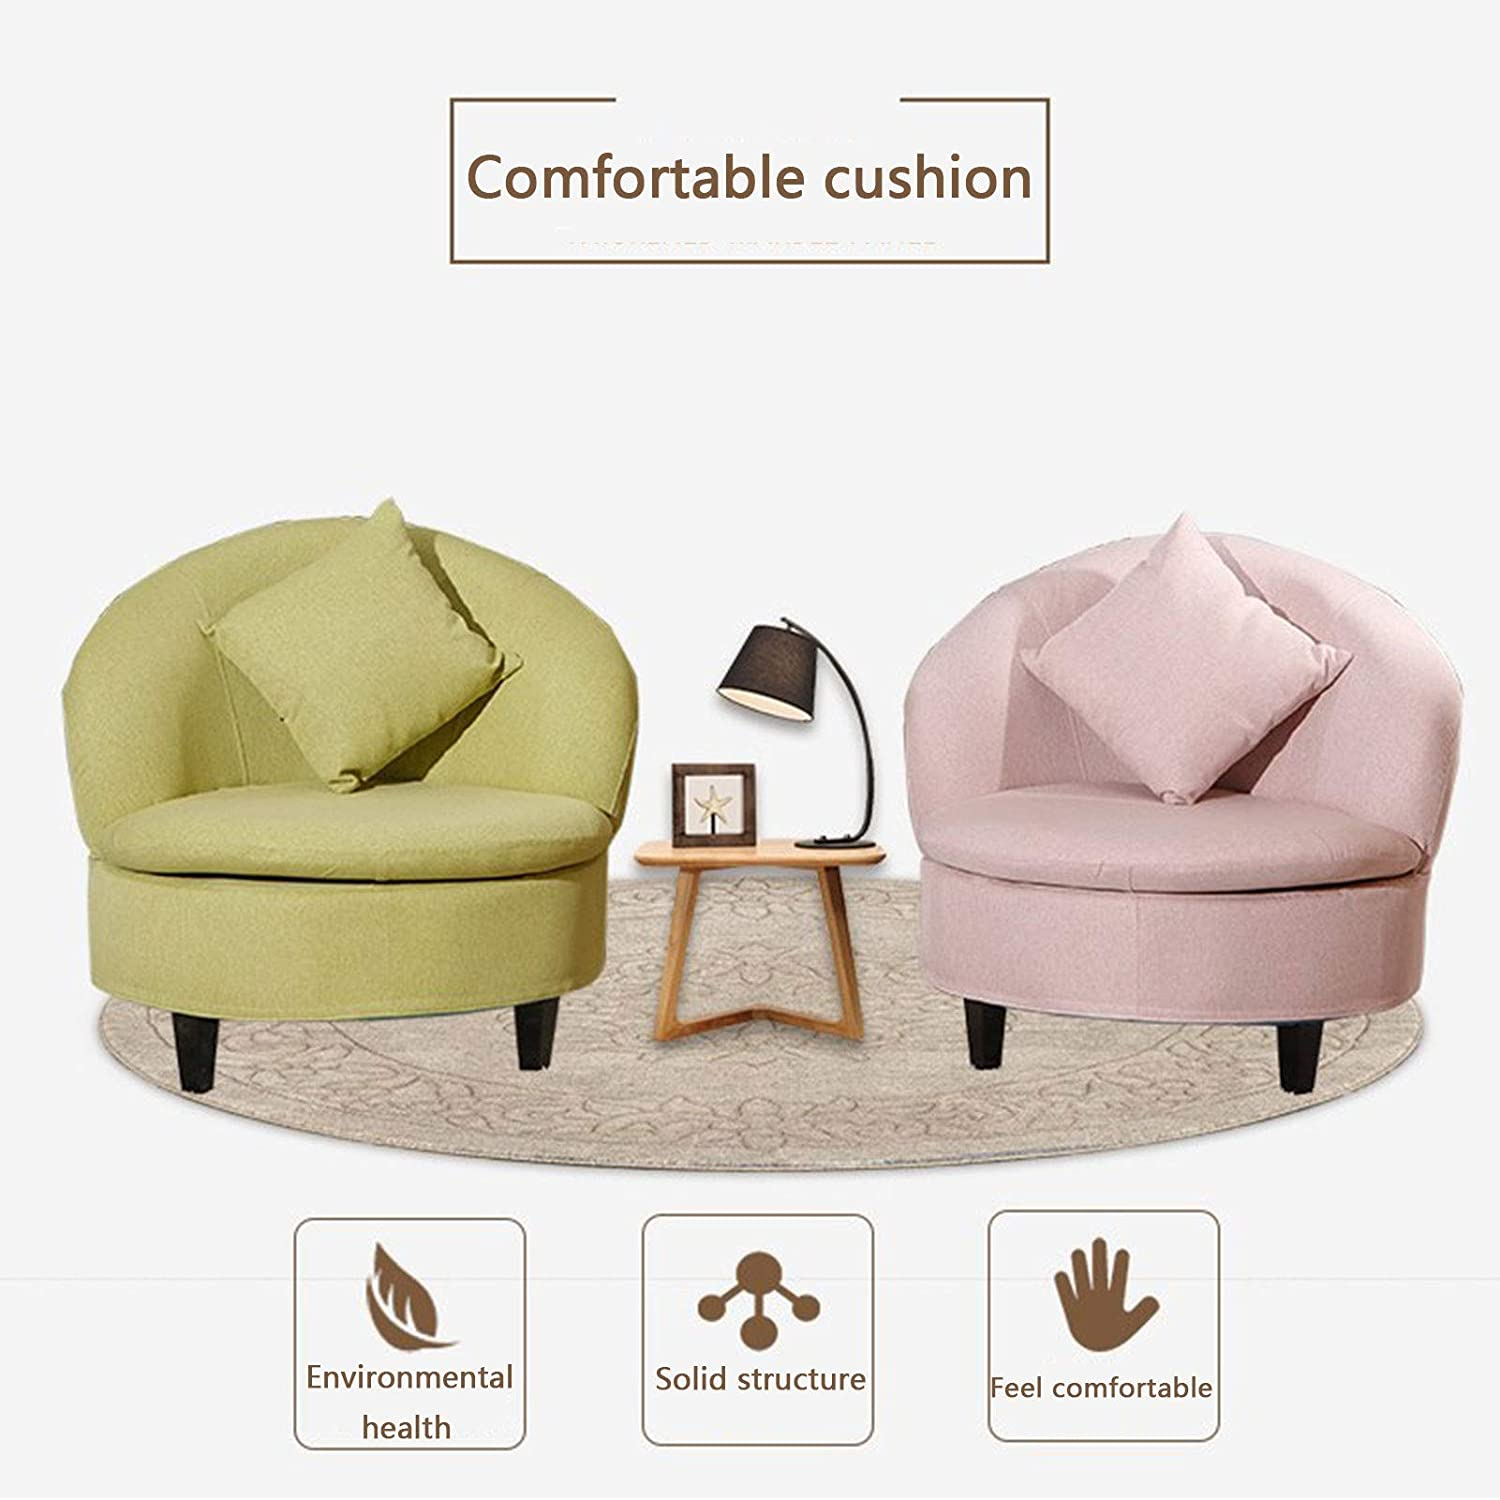 BMNN Fauteuil Repose Pieds Fauteuil Inclinable Et Repose-Pieds Fauteuil Relax Inclinable Style Contemporain Chaise Longue Cuir de (Color : Pink) Maroon